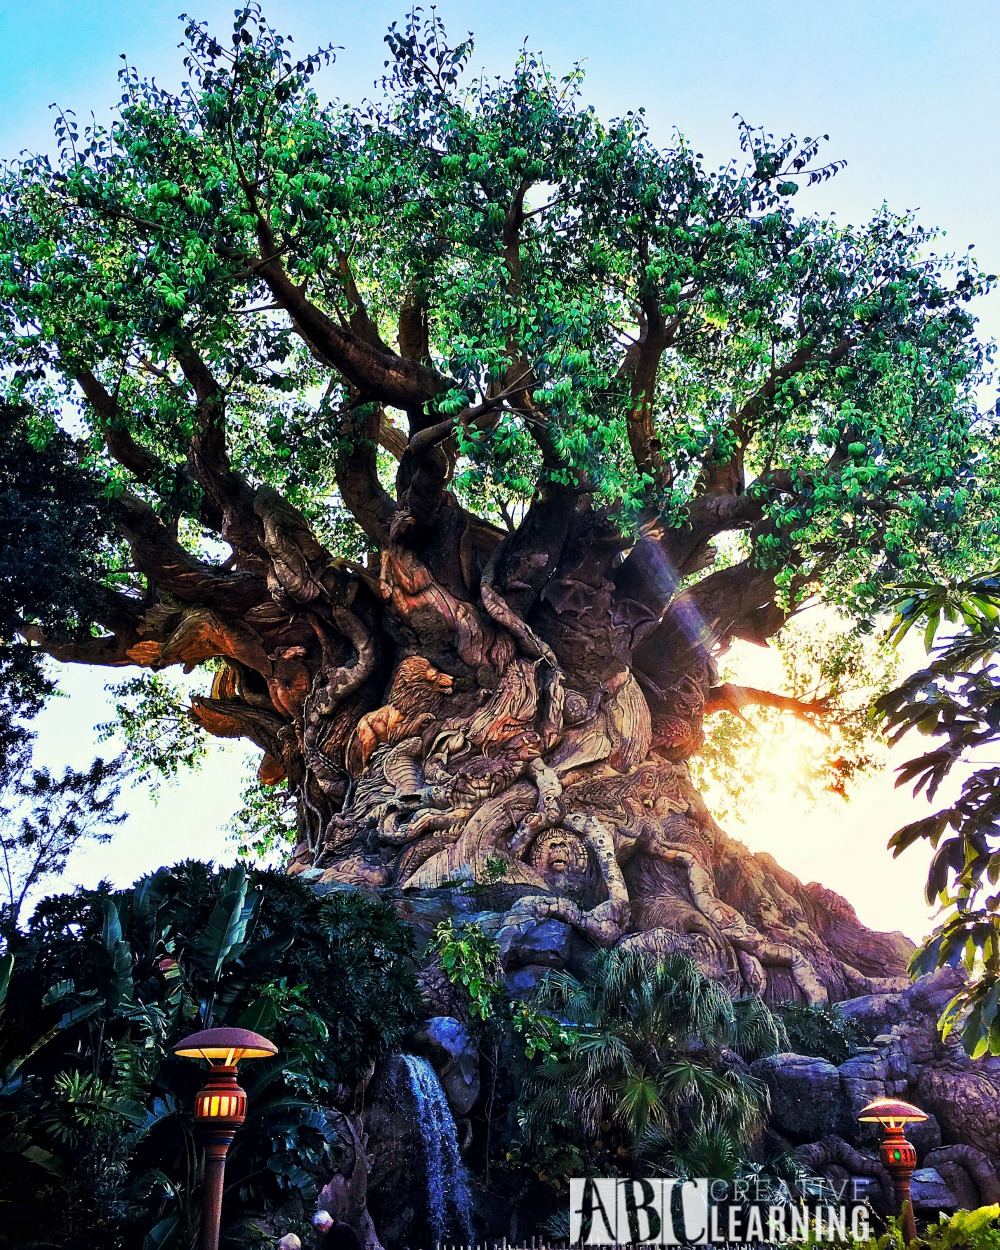 7 Reasons To Visit Disney's Animal Kingdom Theme Park